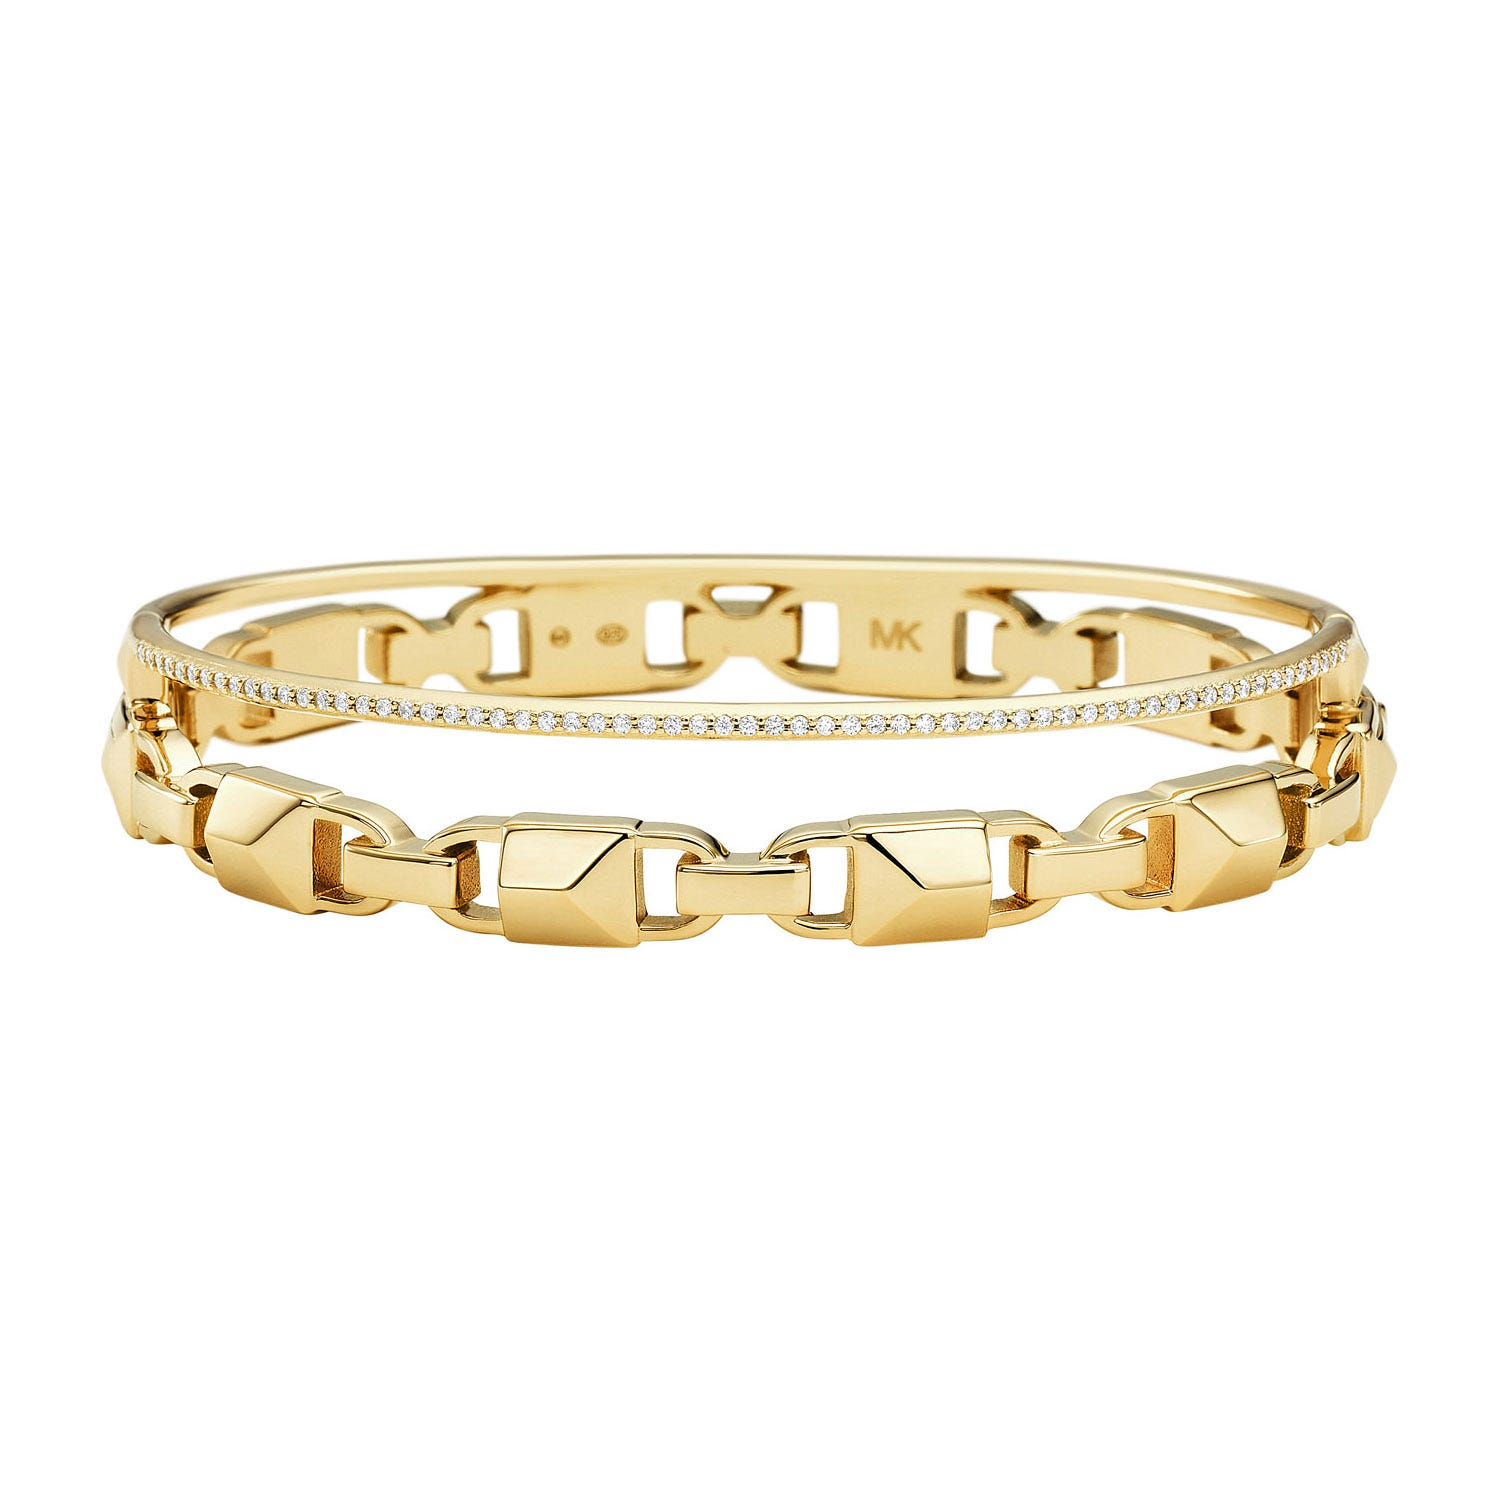 Michael Kors 14ct Yellow Gold-Plated Two Row Bracelet